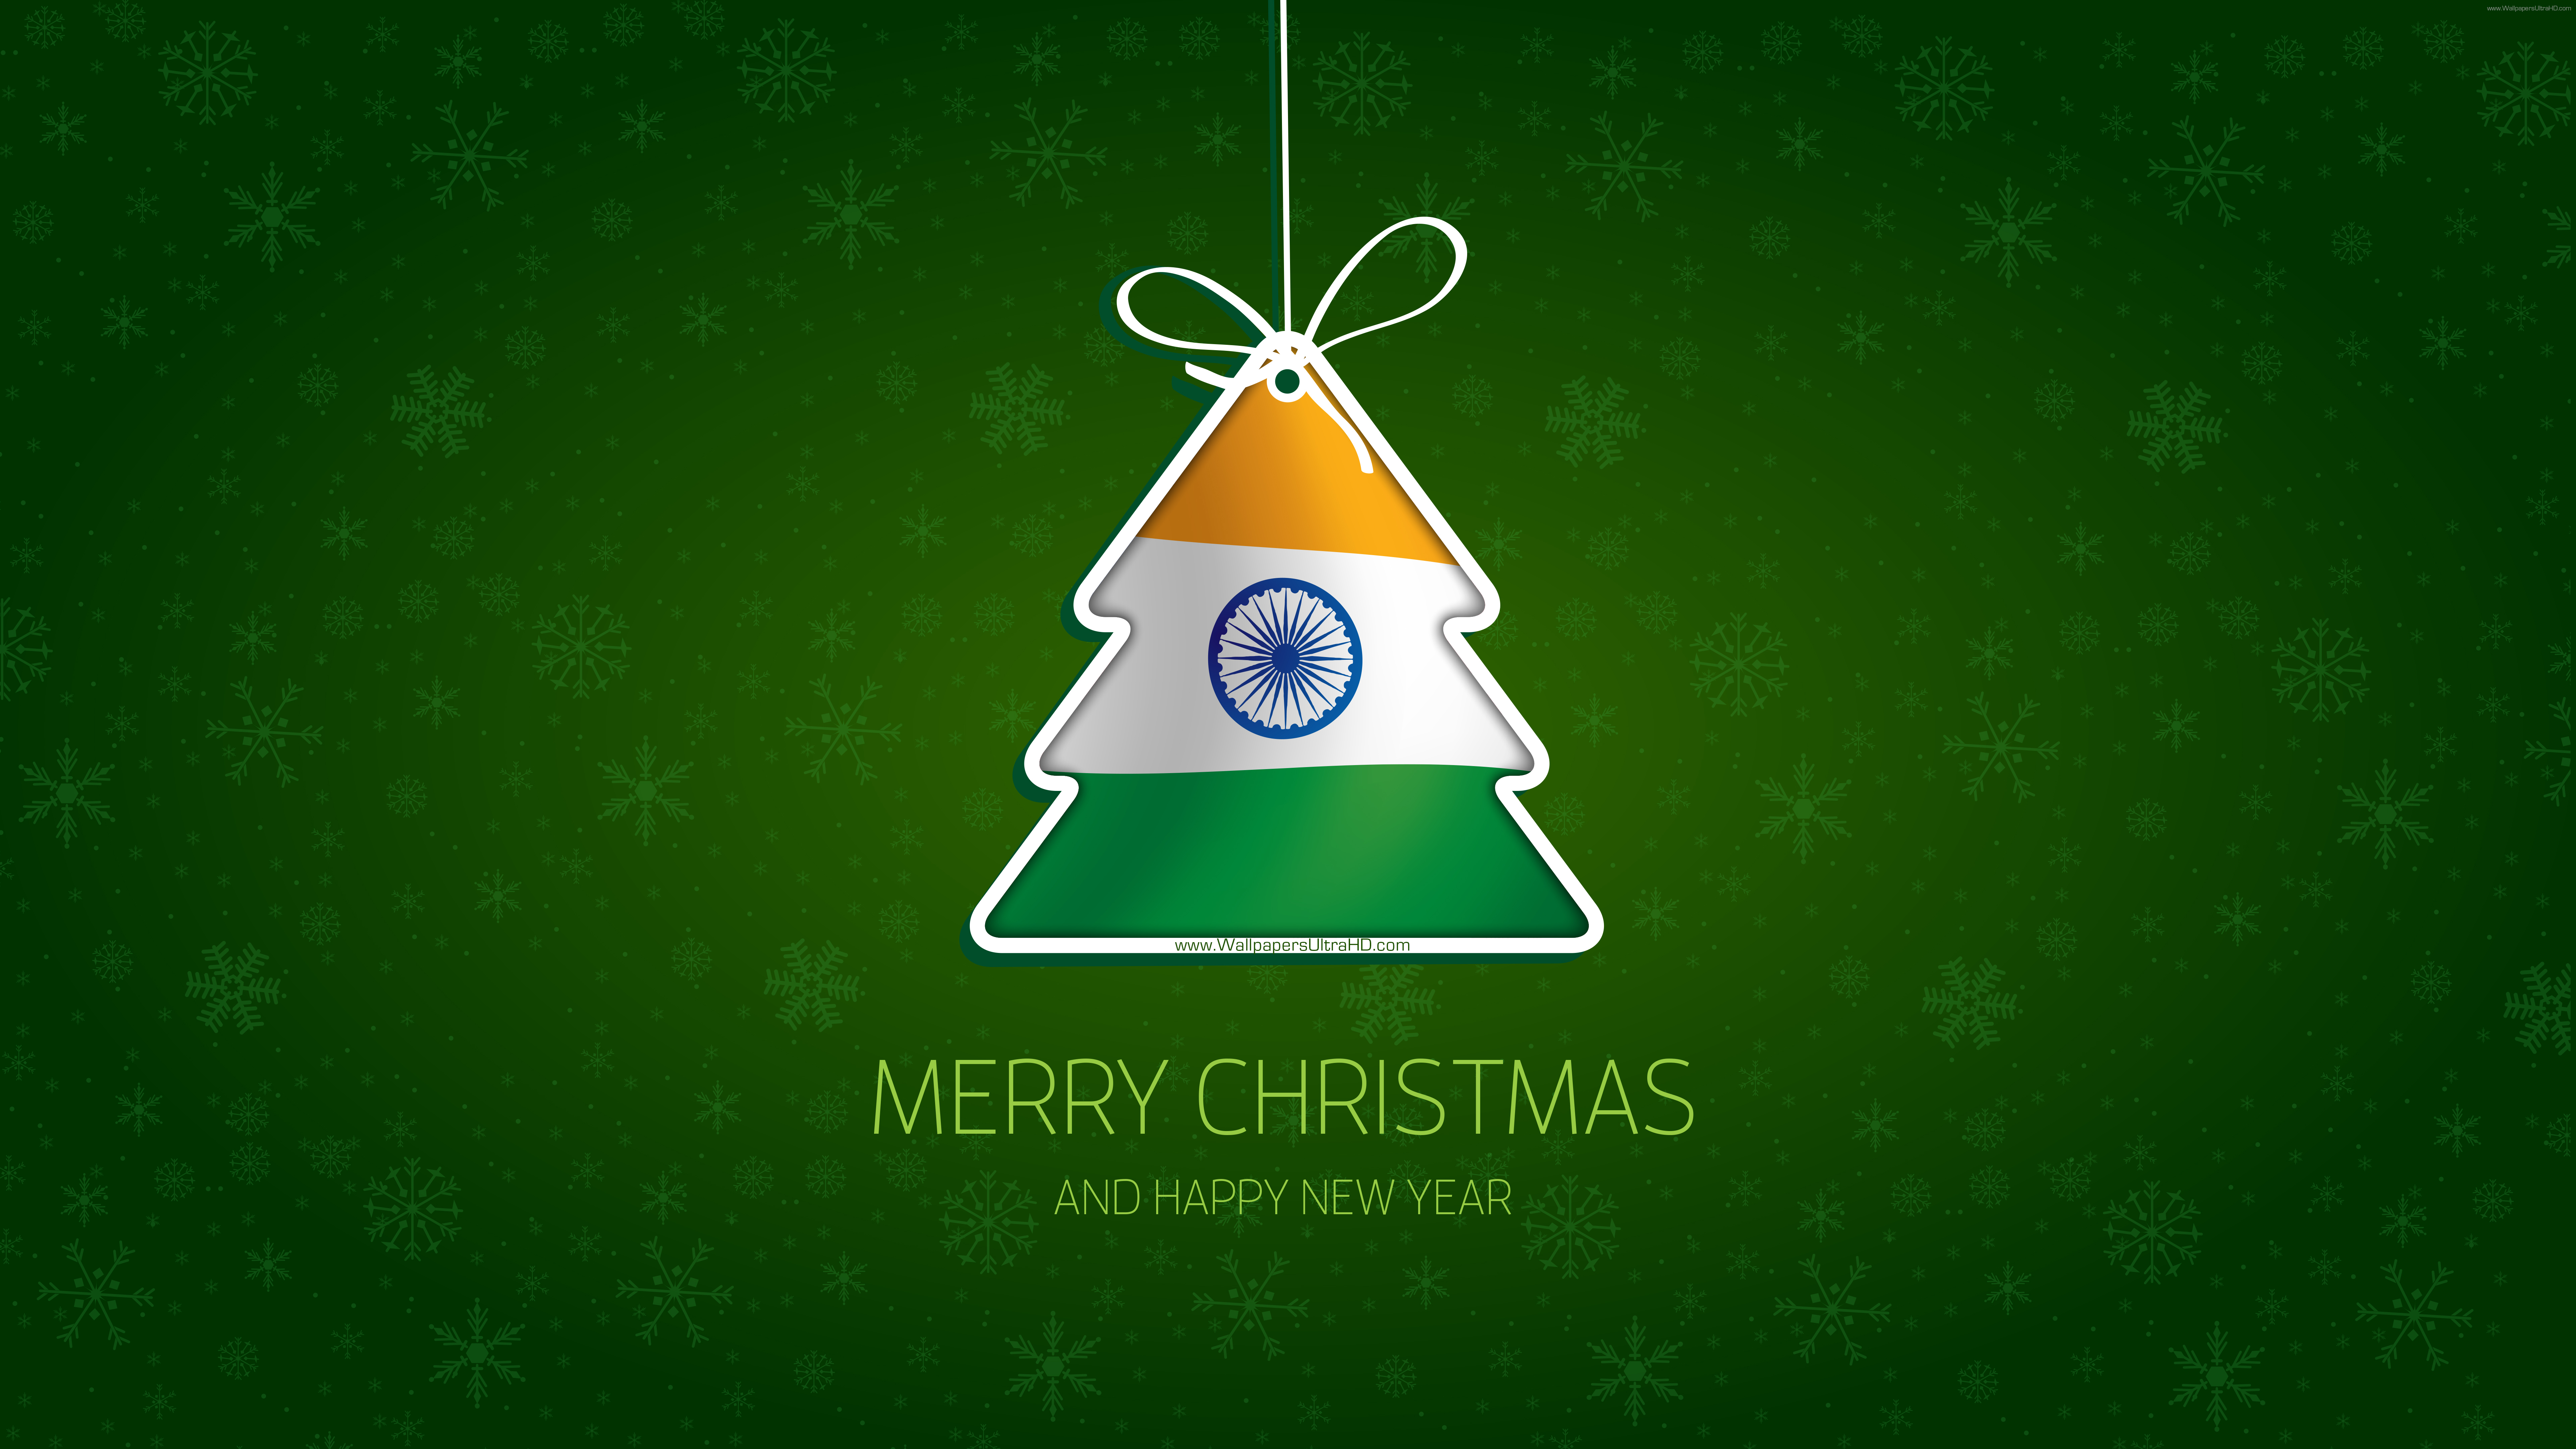 MERRY CHRISTMAS and HAPPY NEW YEAR India tree 7680x4320